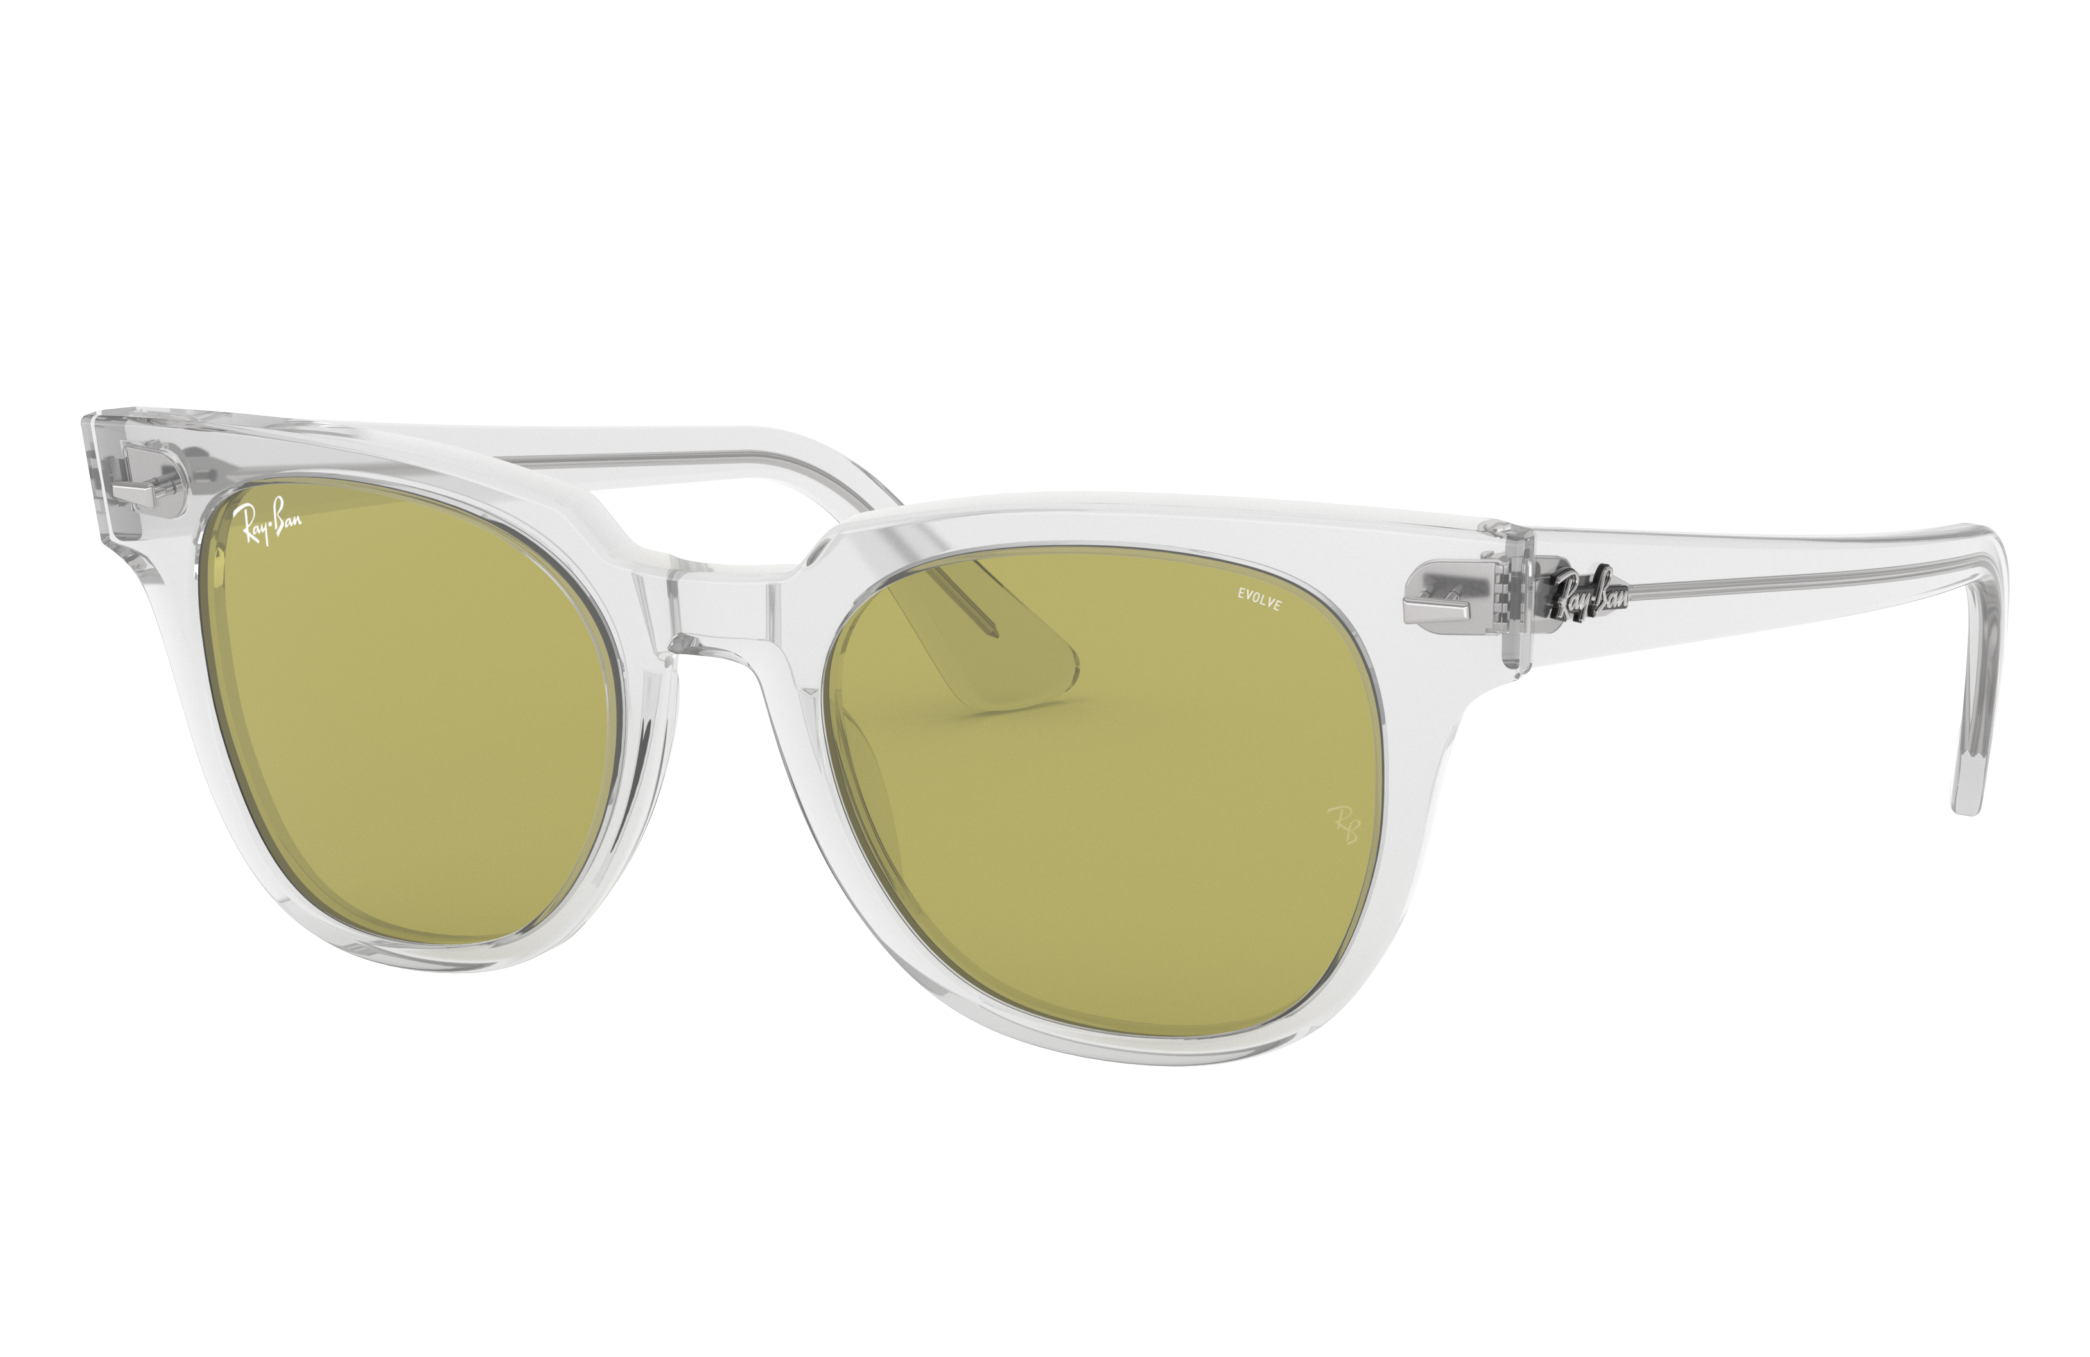 Ray-Ban Meteor Washed Evolve Transparent, Green Lenses - RB2168